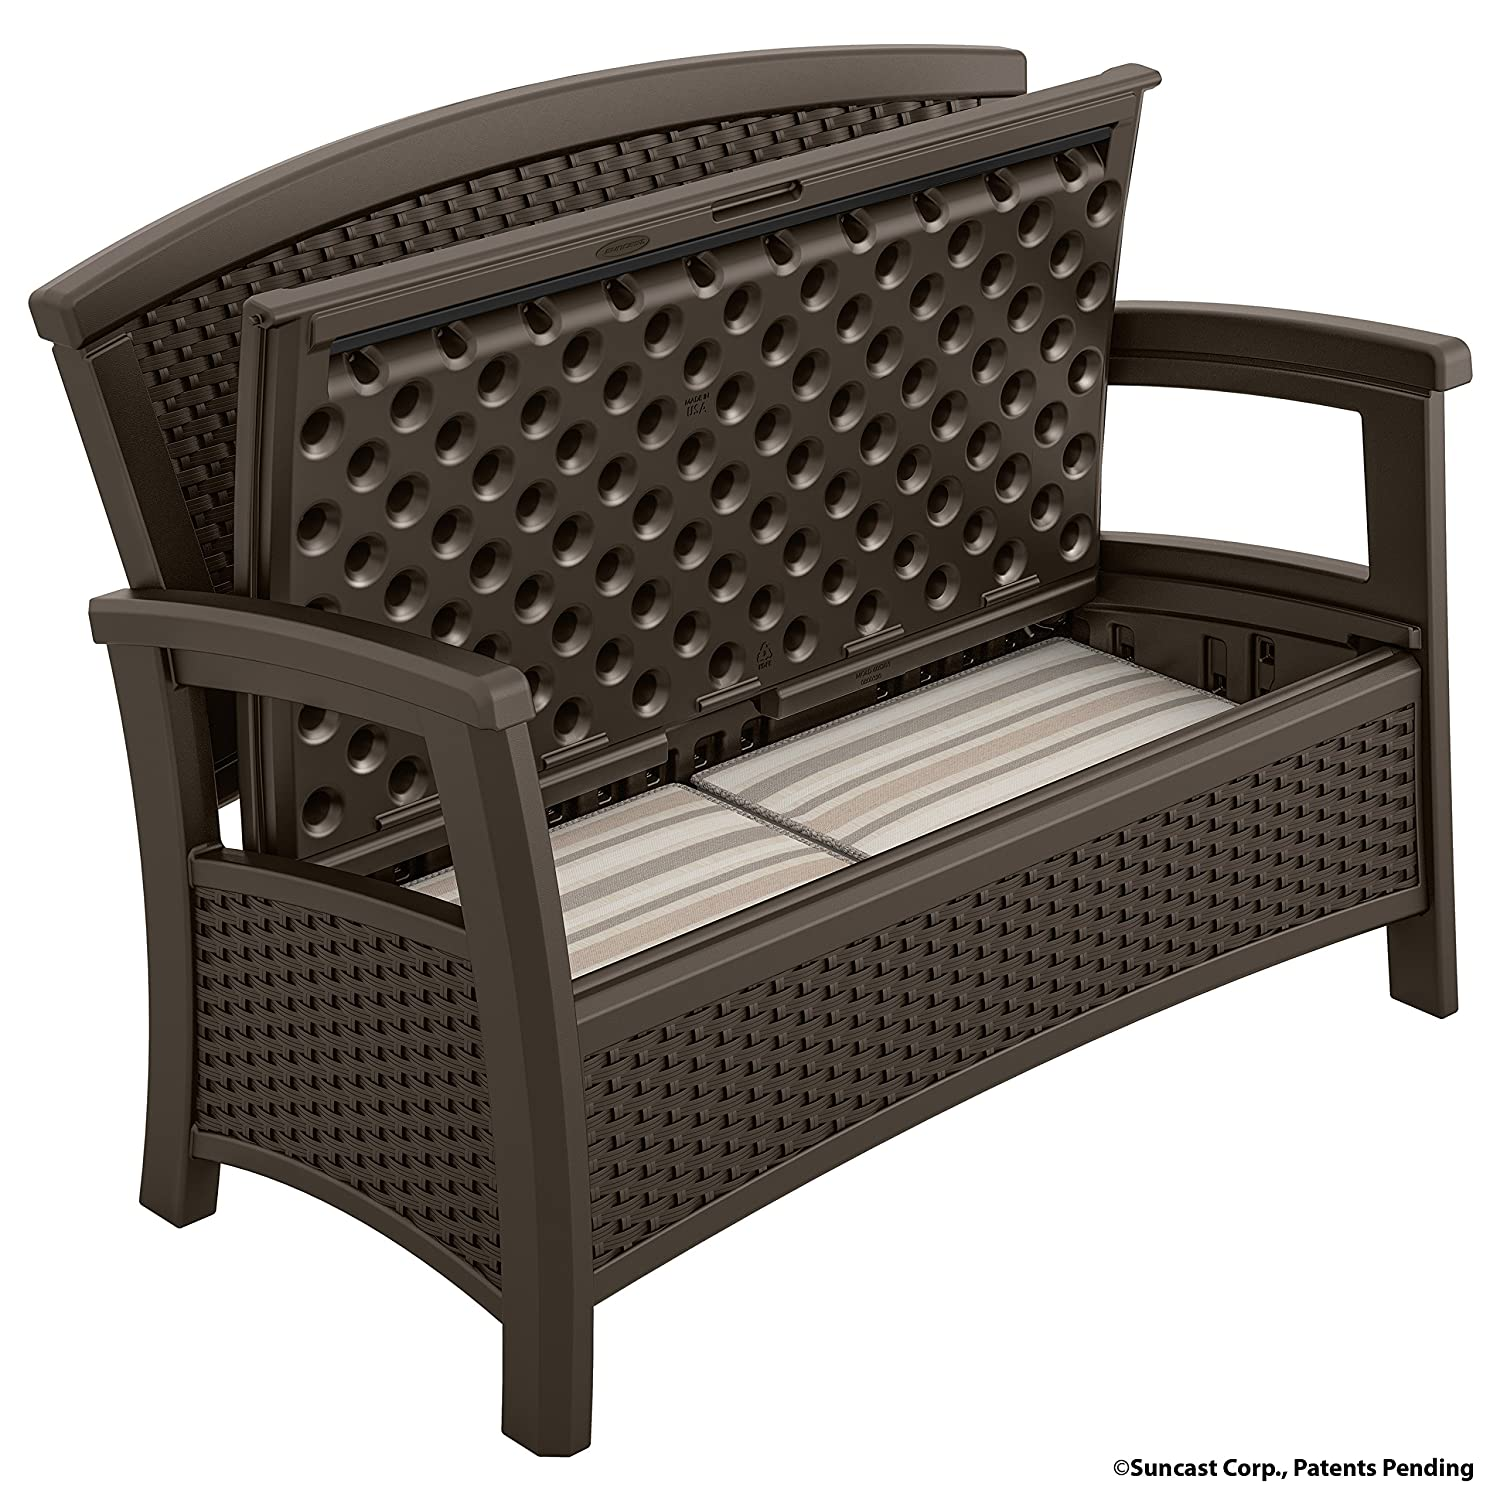 Amazon.com : Suncast ELEMENTS Loveseat With Storage, Java : Garden U0026 Outdoor